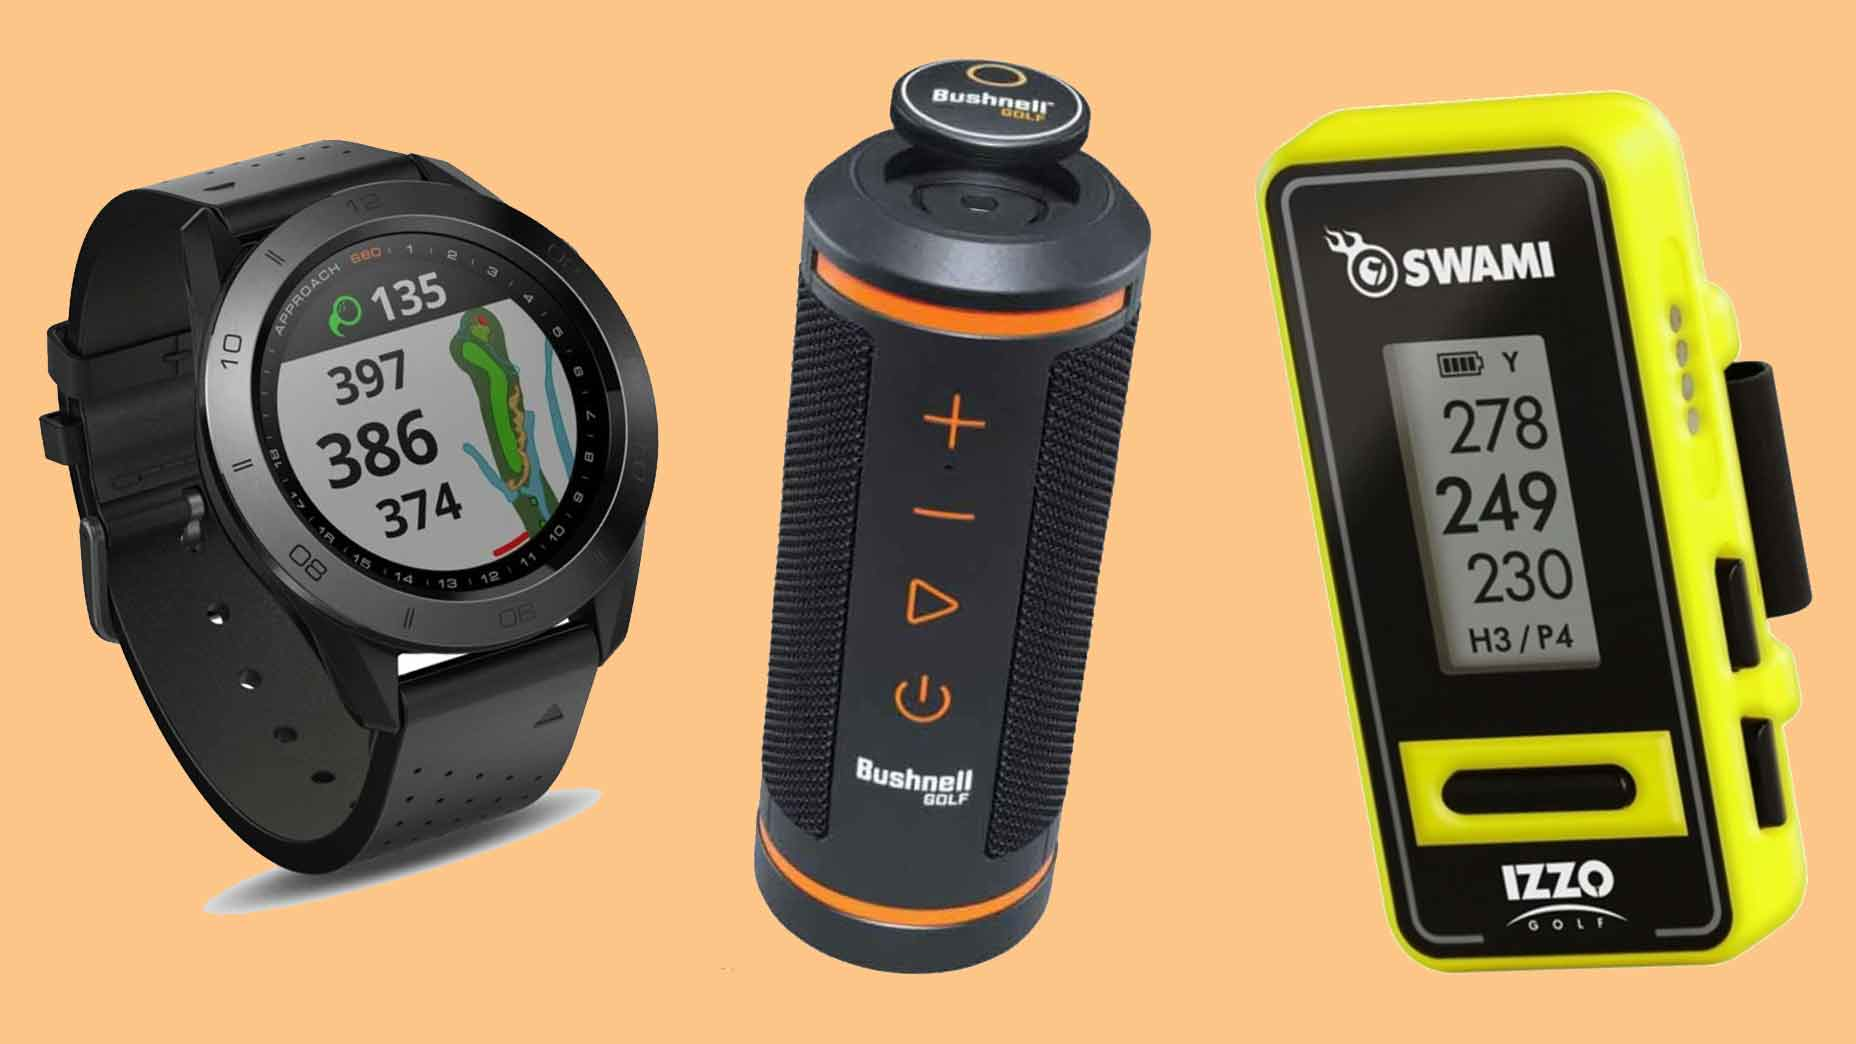 Best golf gifts: 10 awesome gadgets any golfer would love